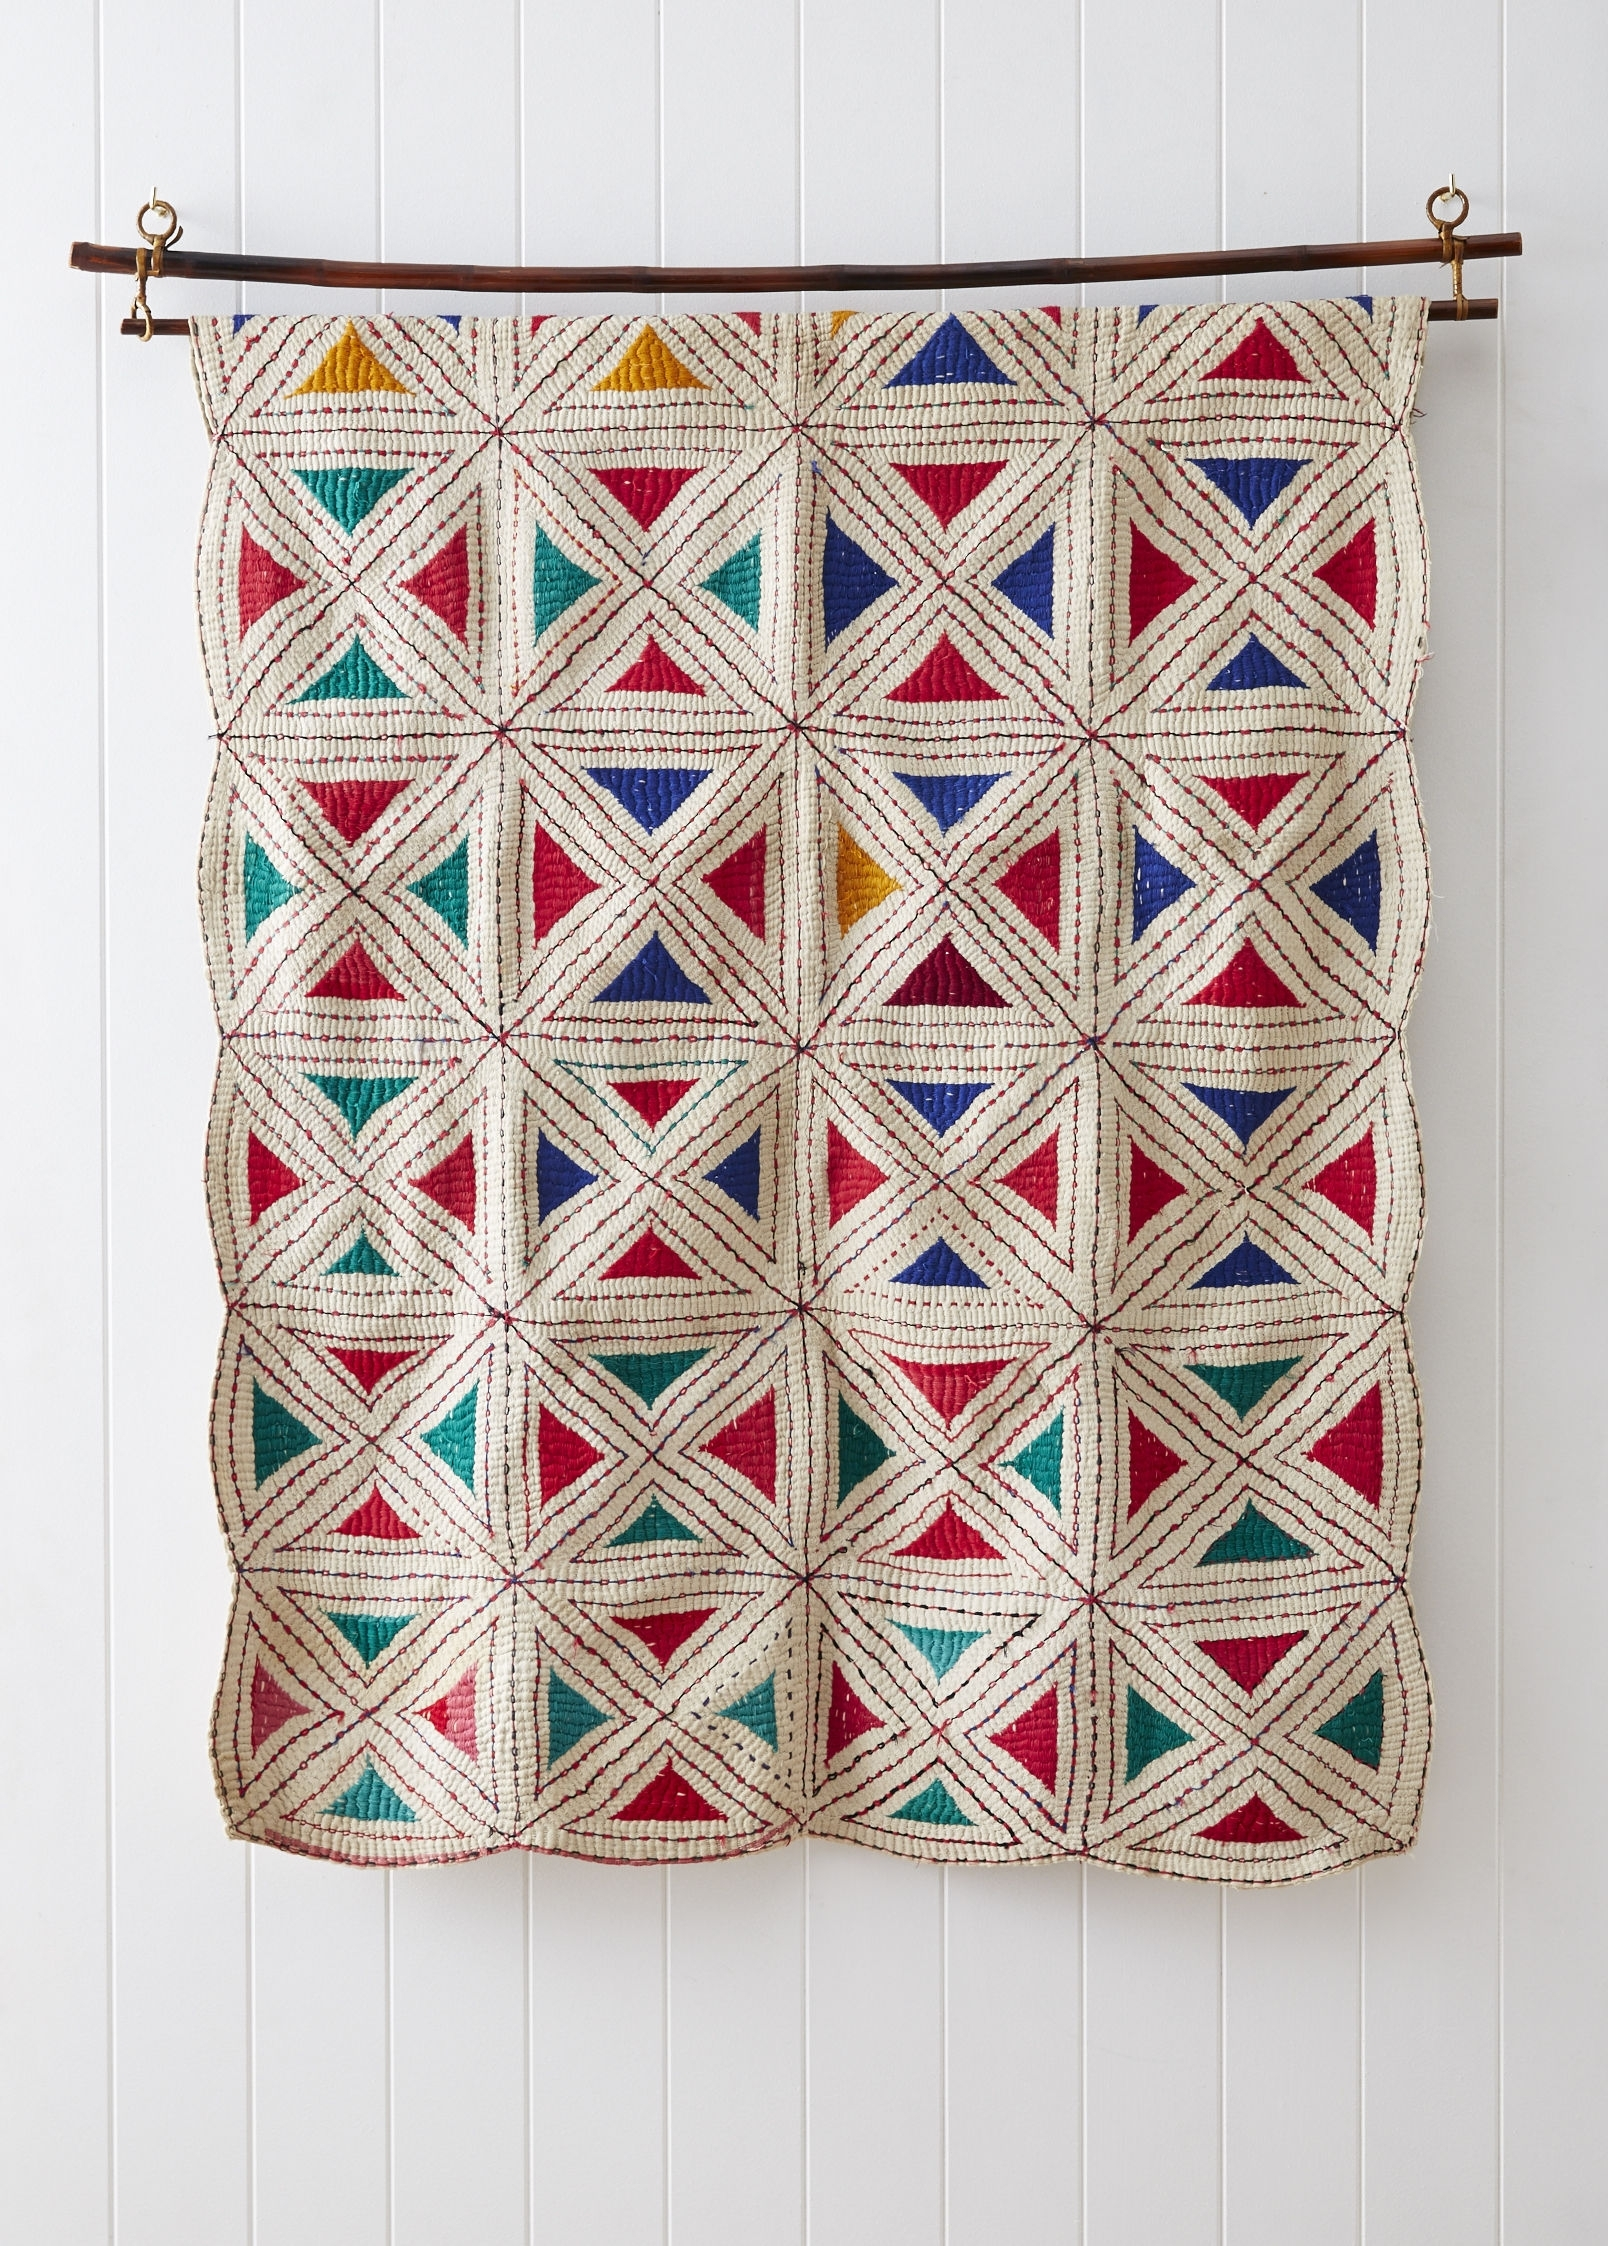 Kantha Stitched Wall Hanging For Most Popular Hanging Textile Wall Art (Gallery 3 of 15)